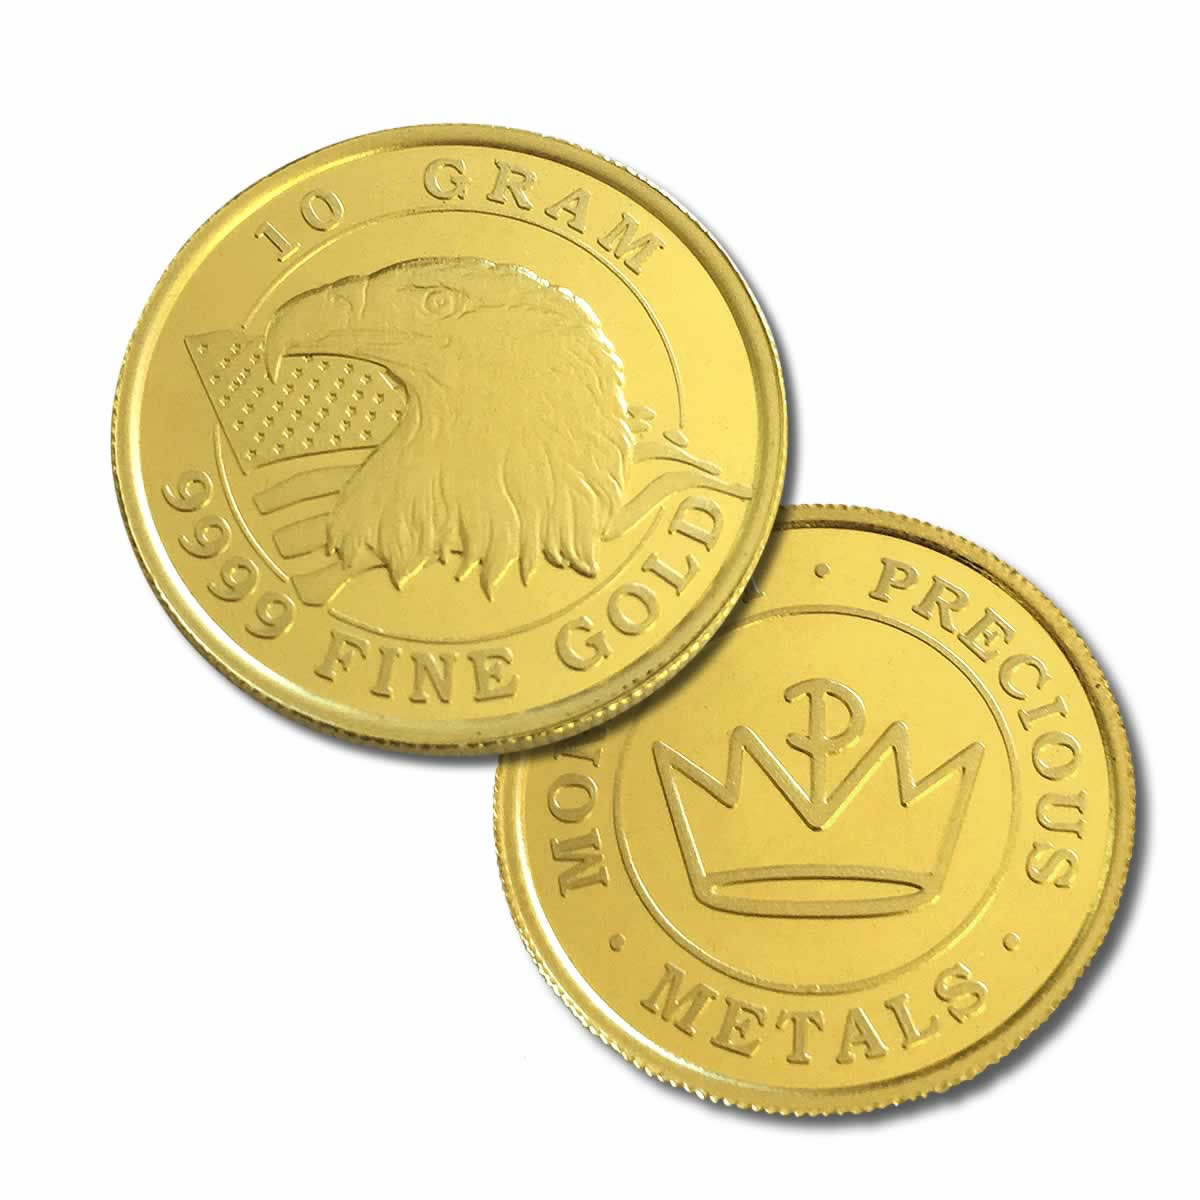 10 Gram (0.321 troy oz) Monarch Metals .9999 Fine Gold Rounds - only 2.75% over melt (REDUCED)